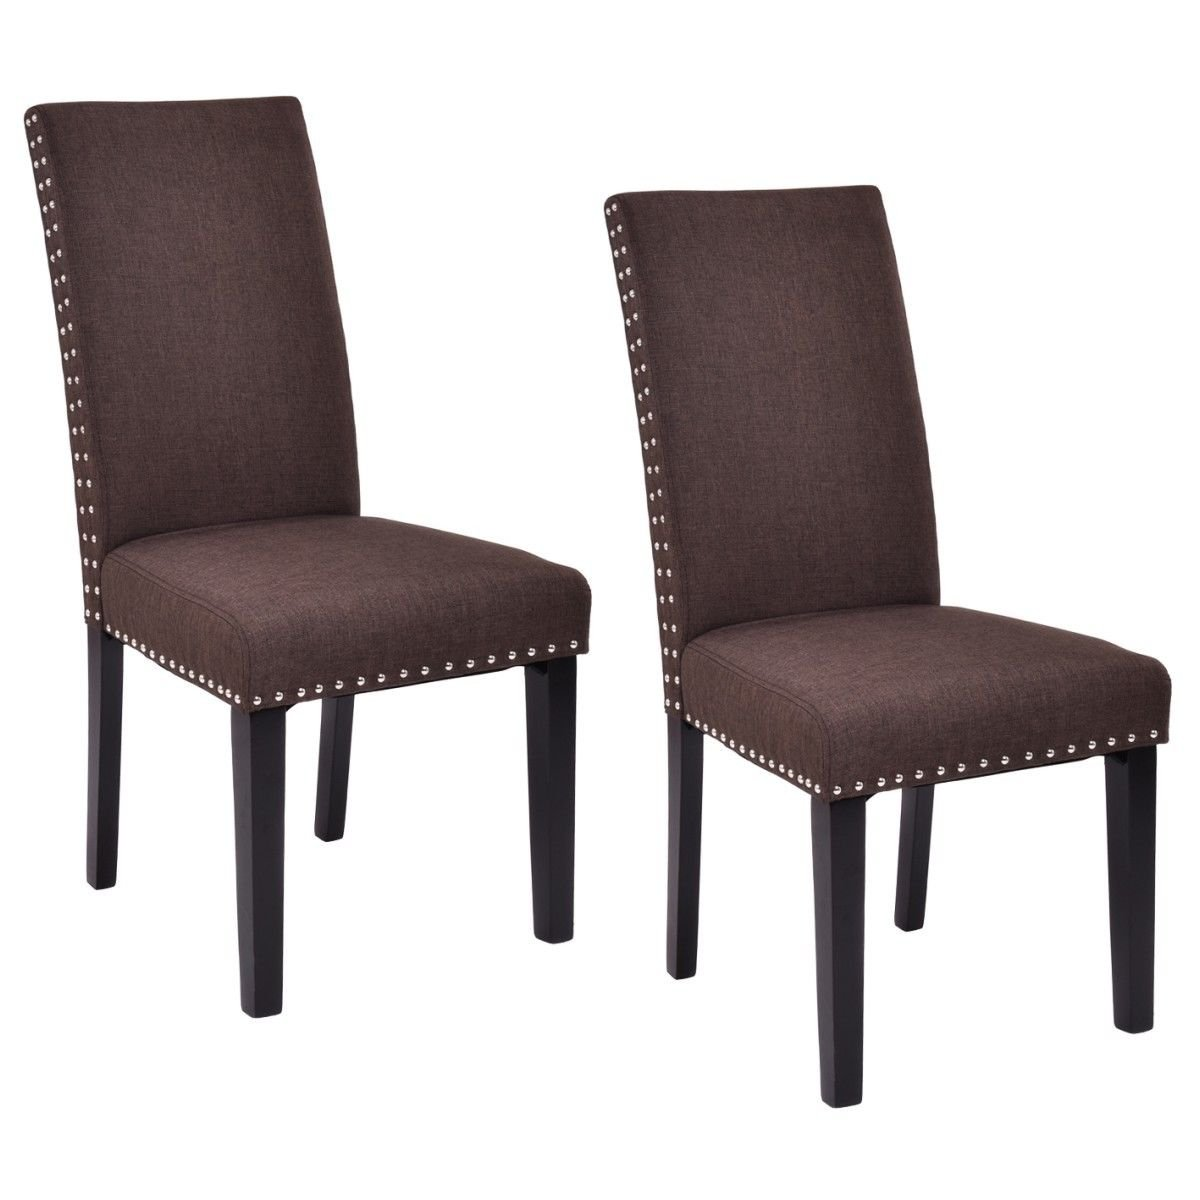 Giantex Set of 2 Dining Chairs Fabric Upholstered Armless Accent Home Kitchen Furniture (Brown)